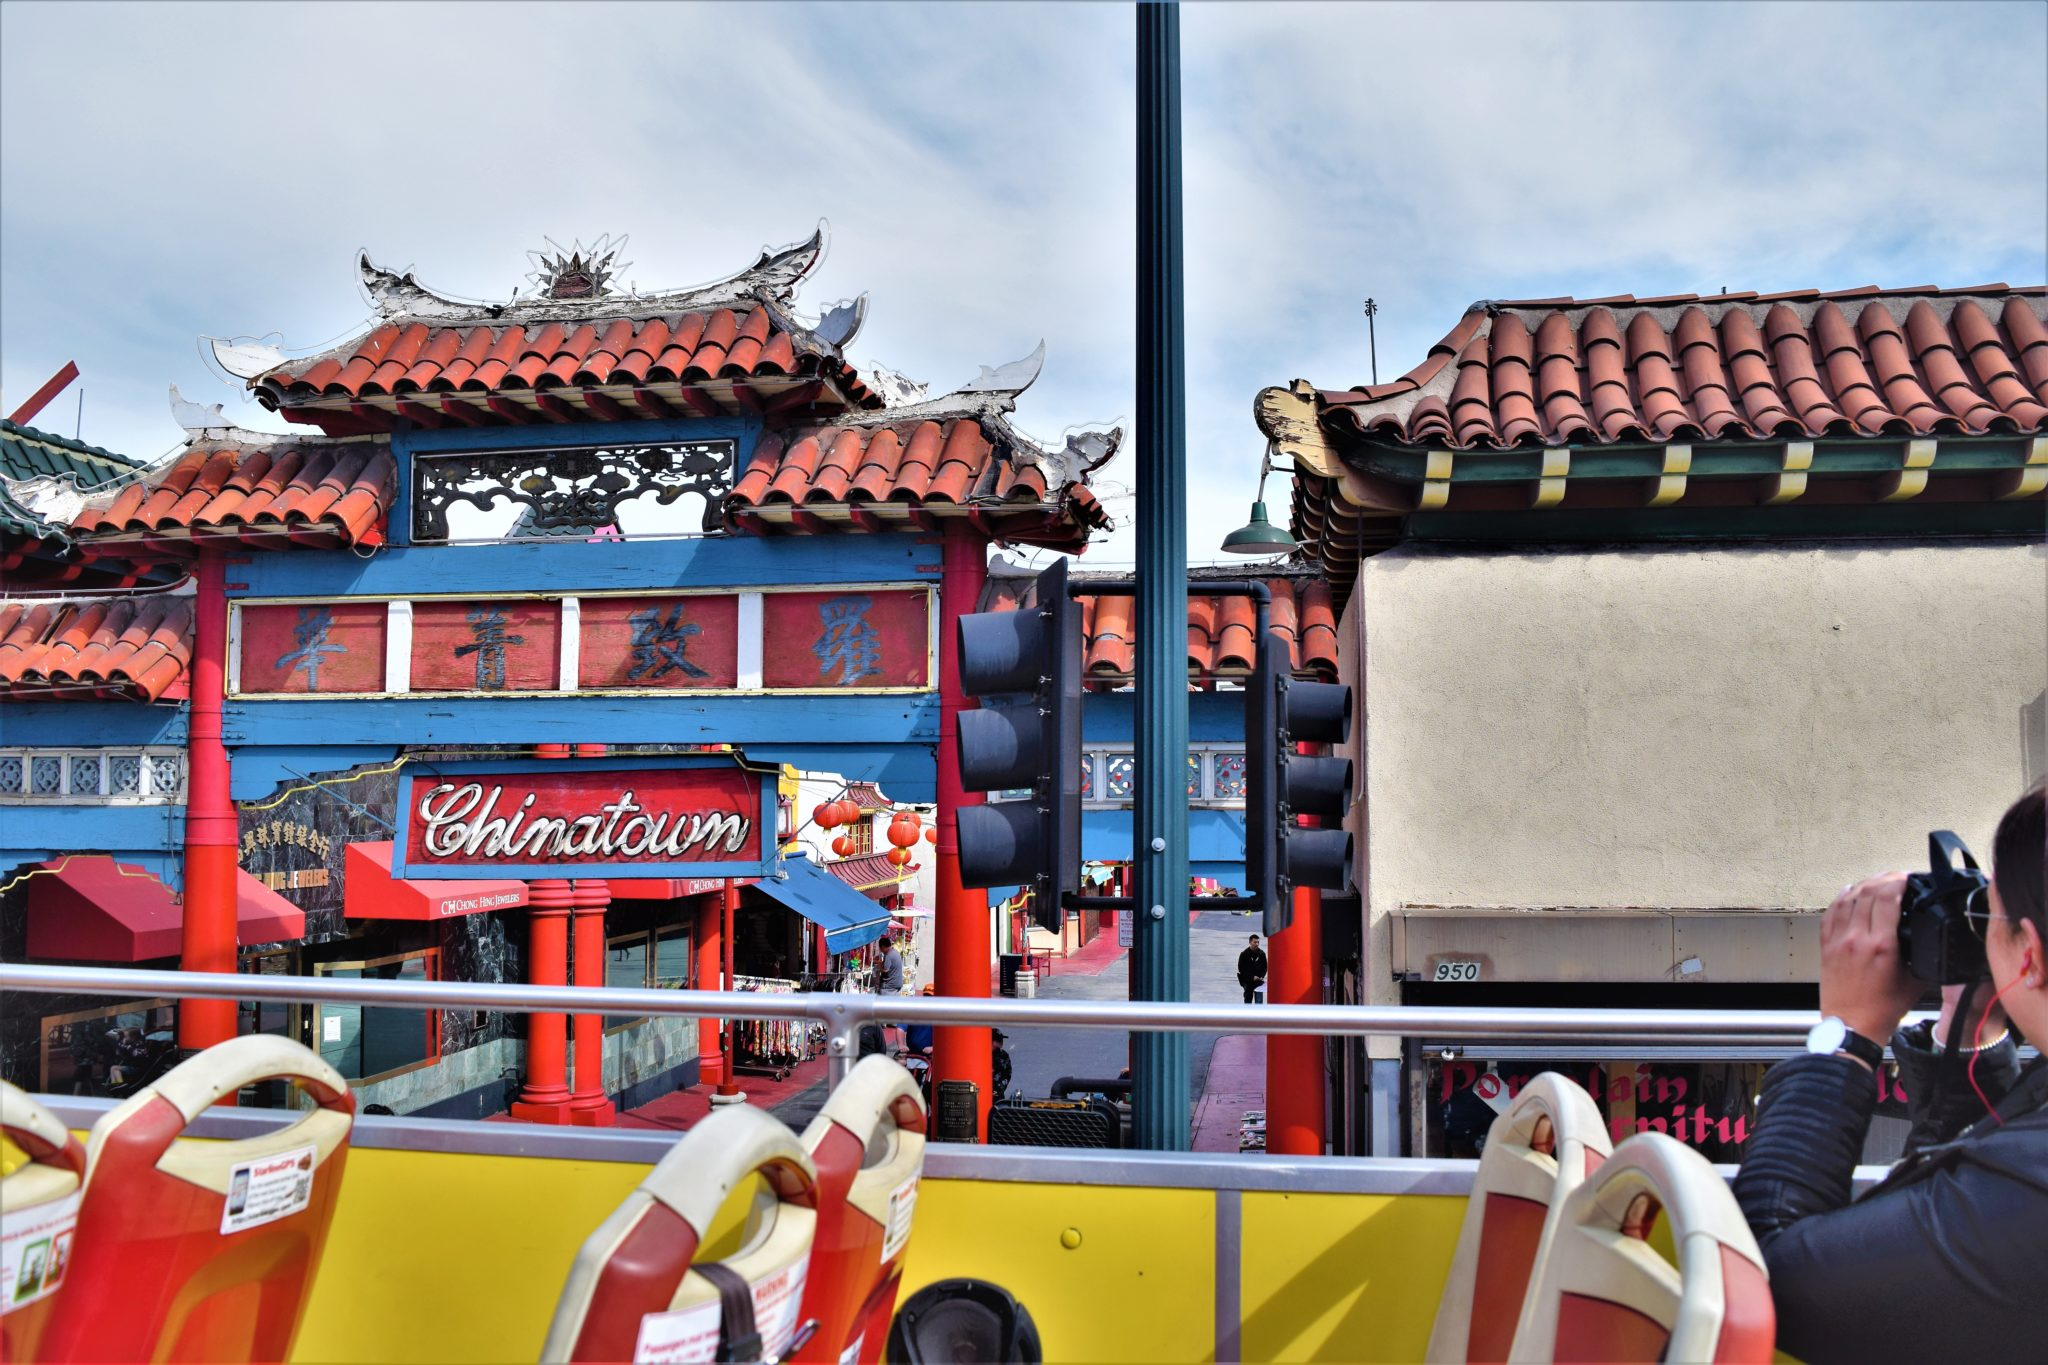 Chinatown, hop on hop off bus los angeles, things to do in la